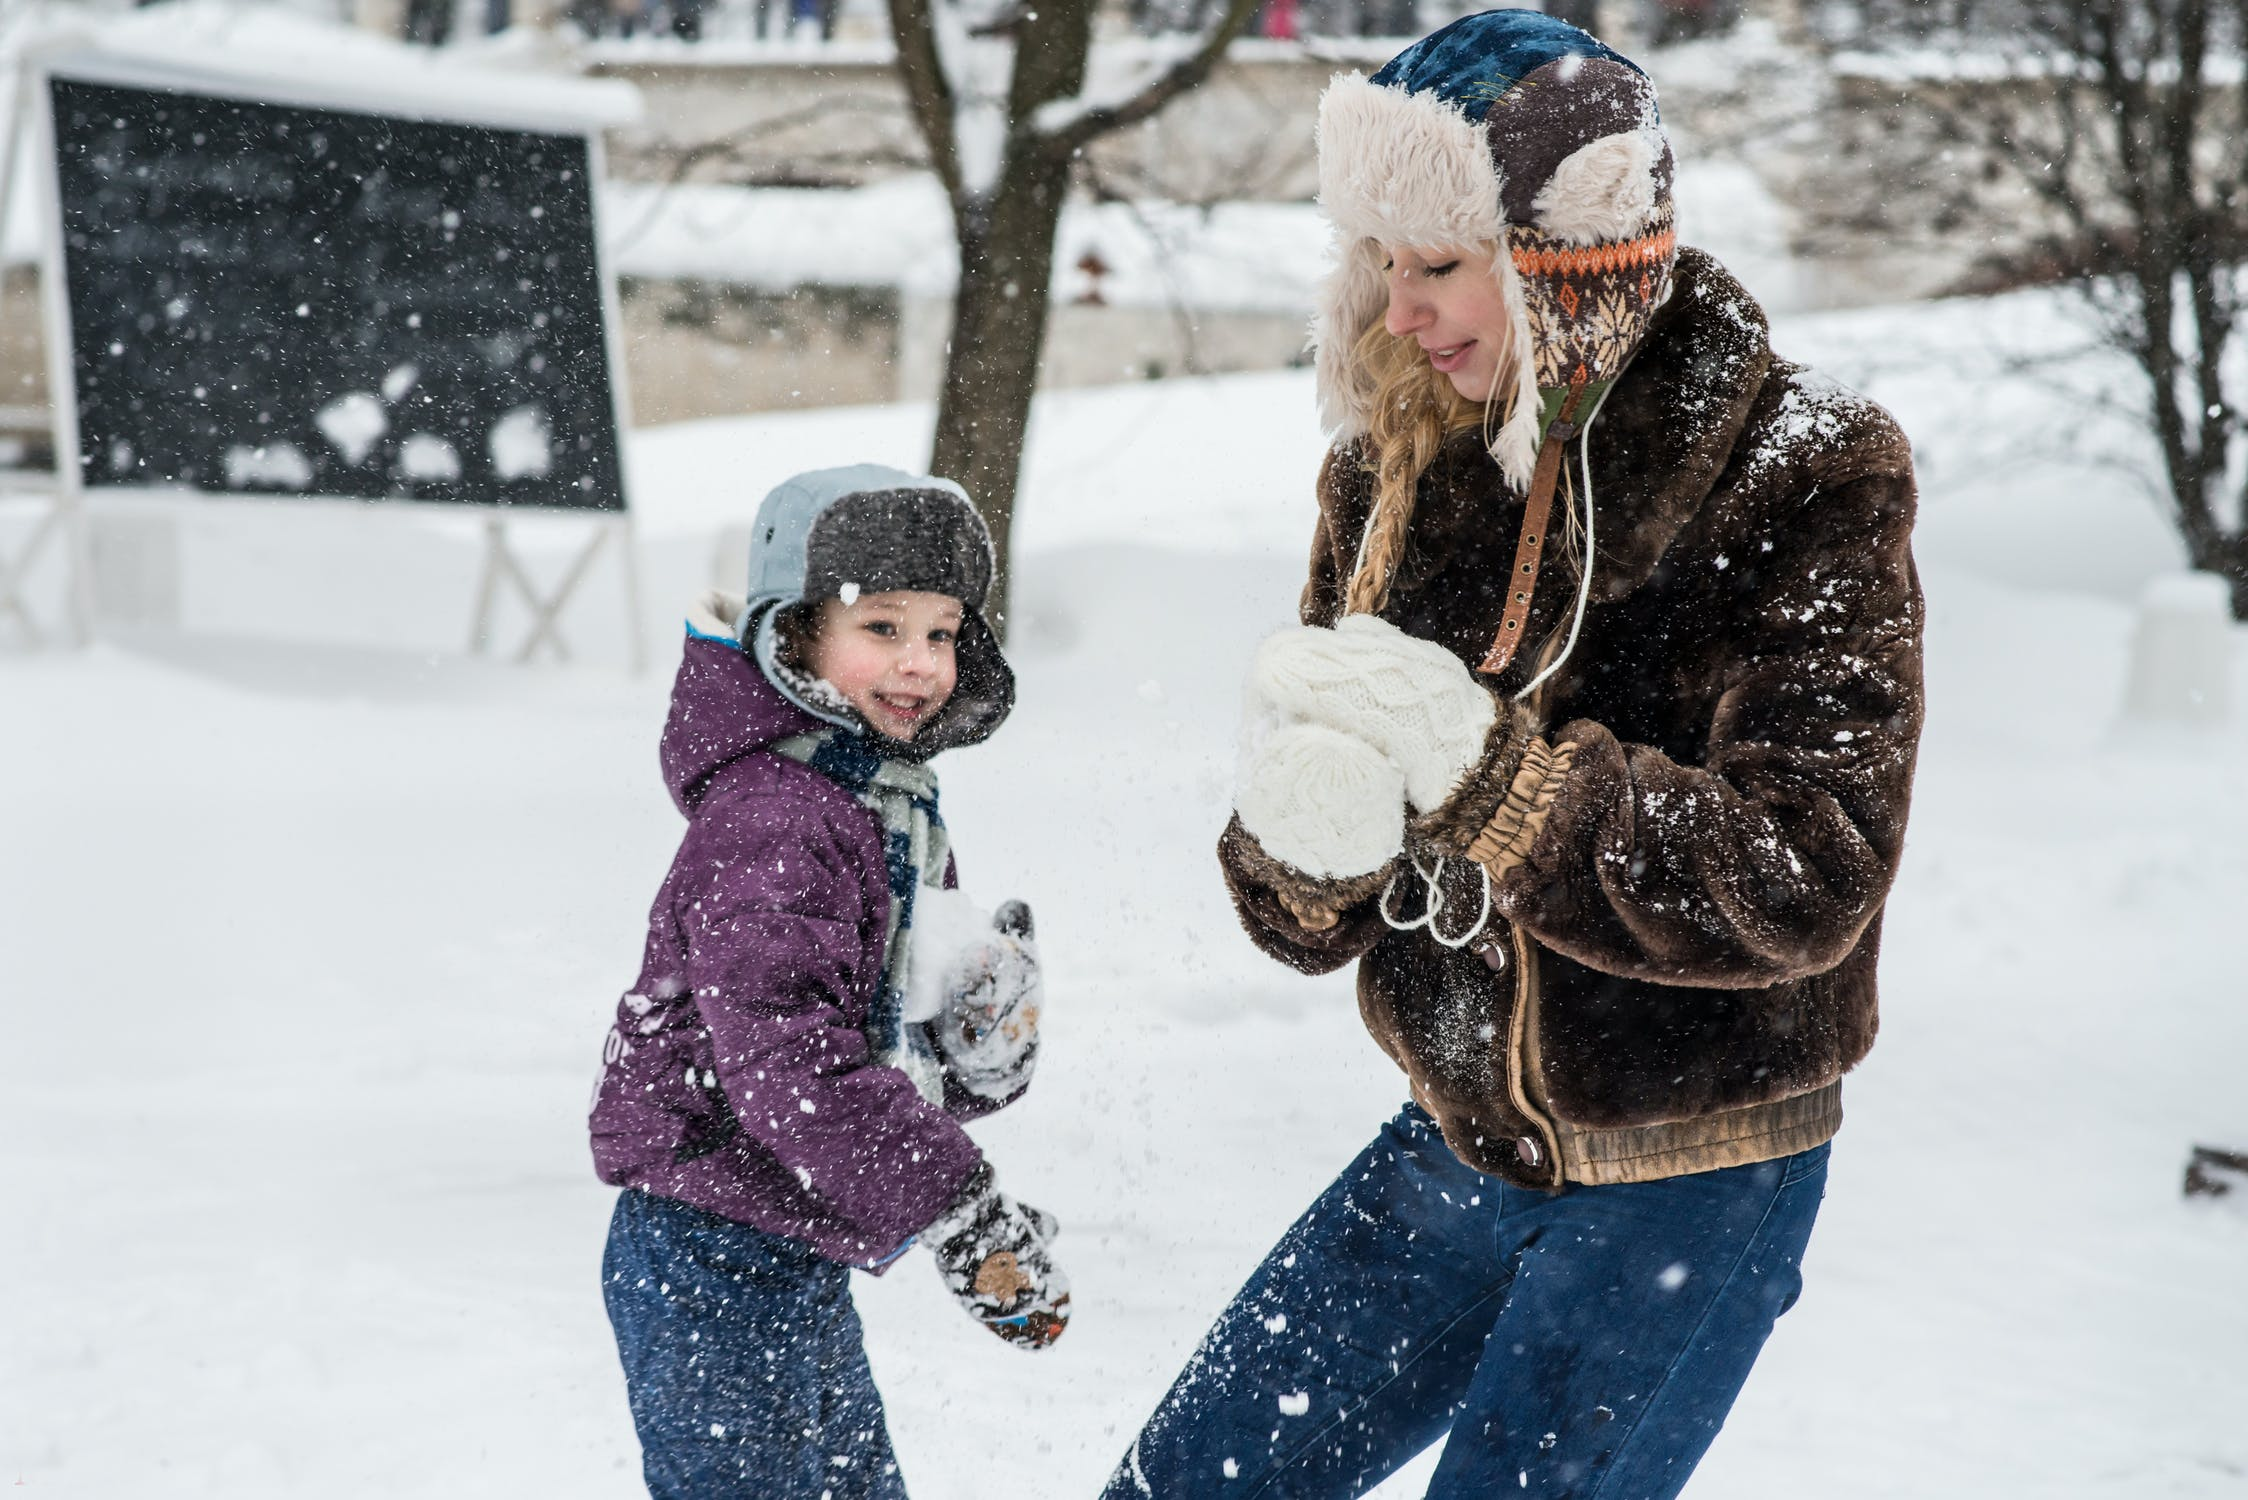 Snow Play Safety